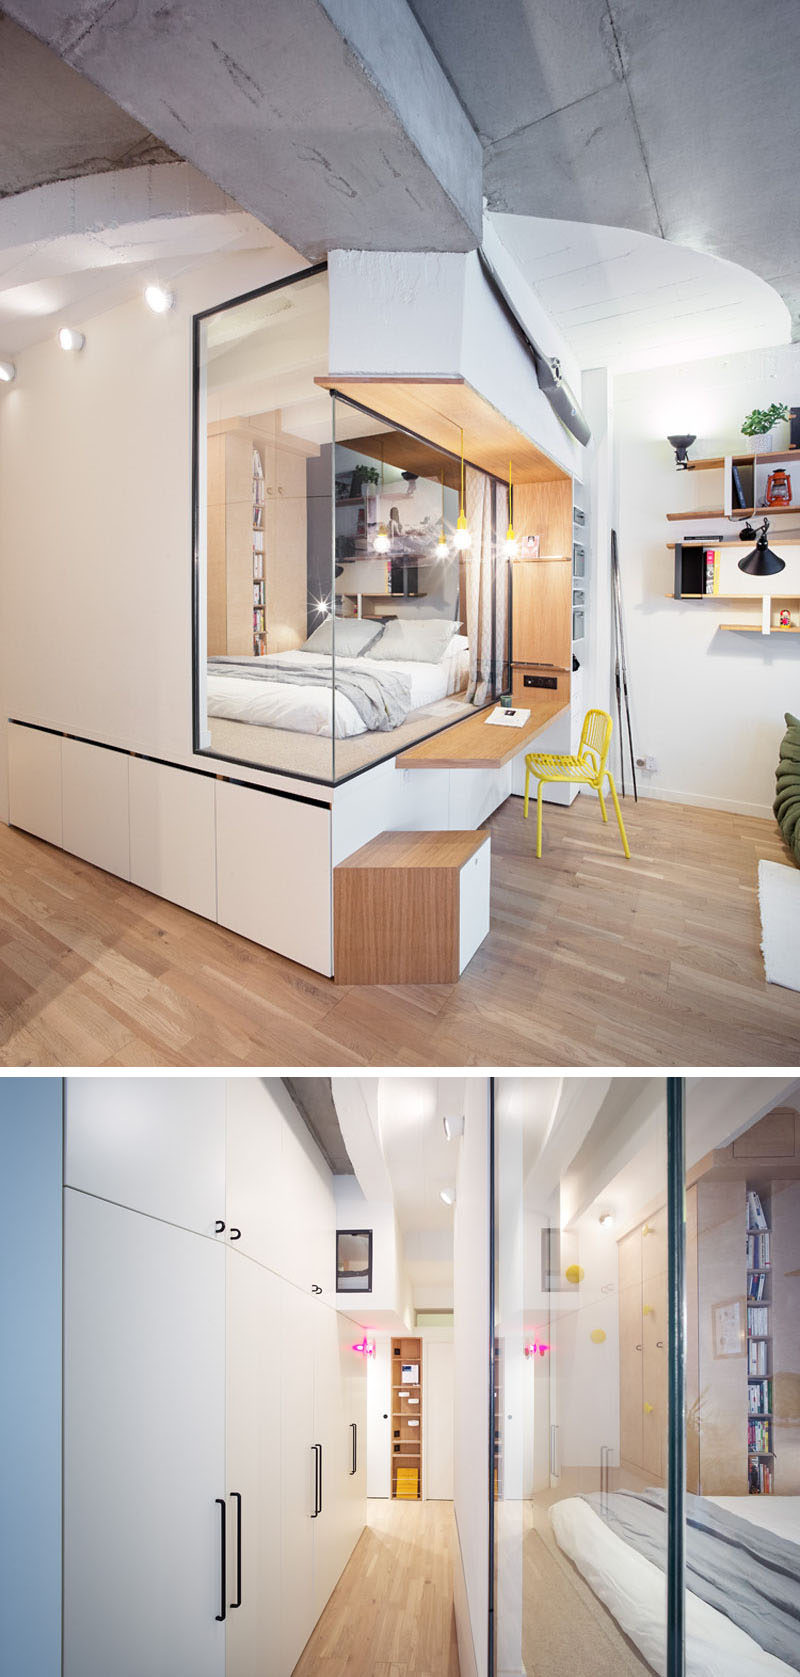 This apartment has internal glass walls to take advantage of the light from the main windows. #GlassWall #Hallway #Bedroom